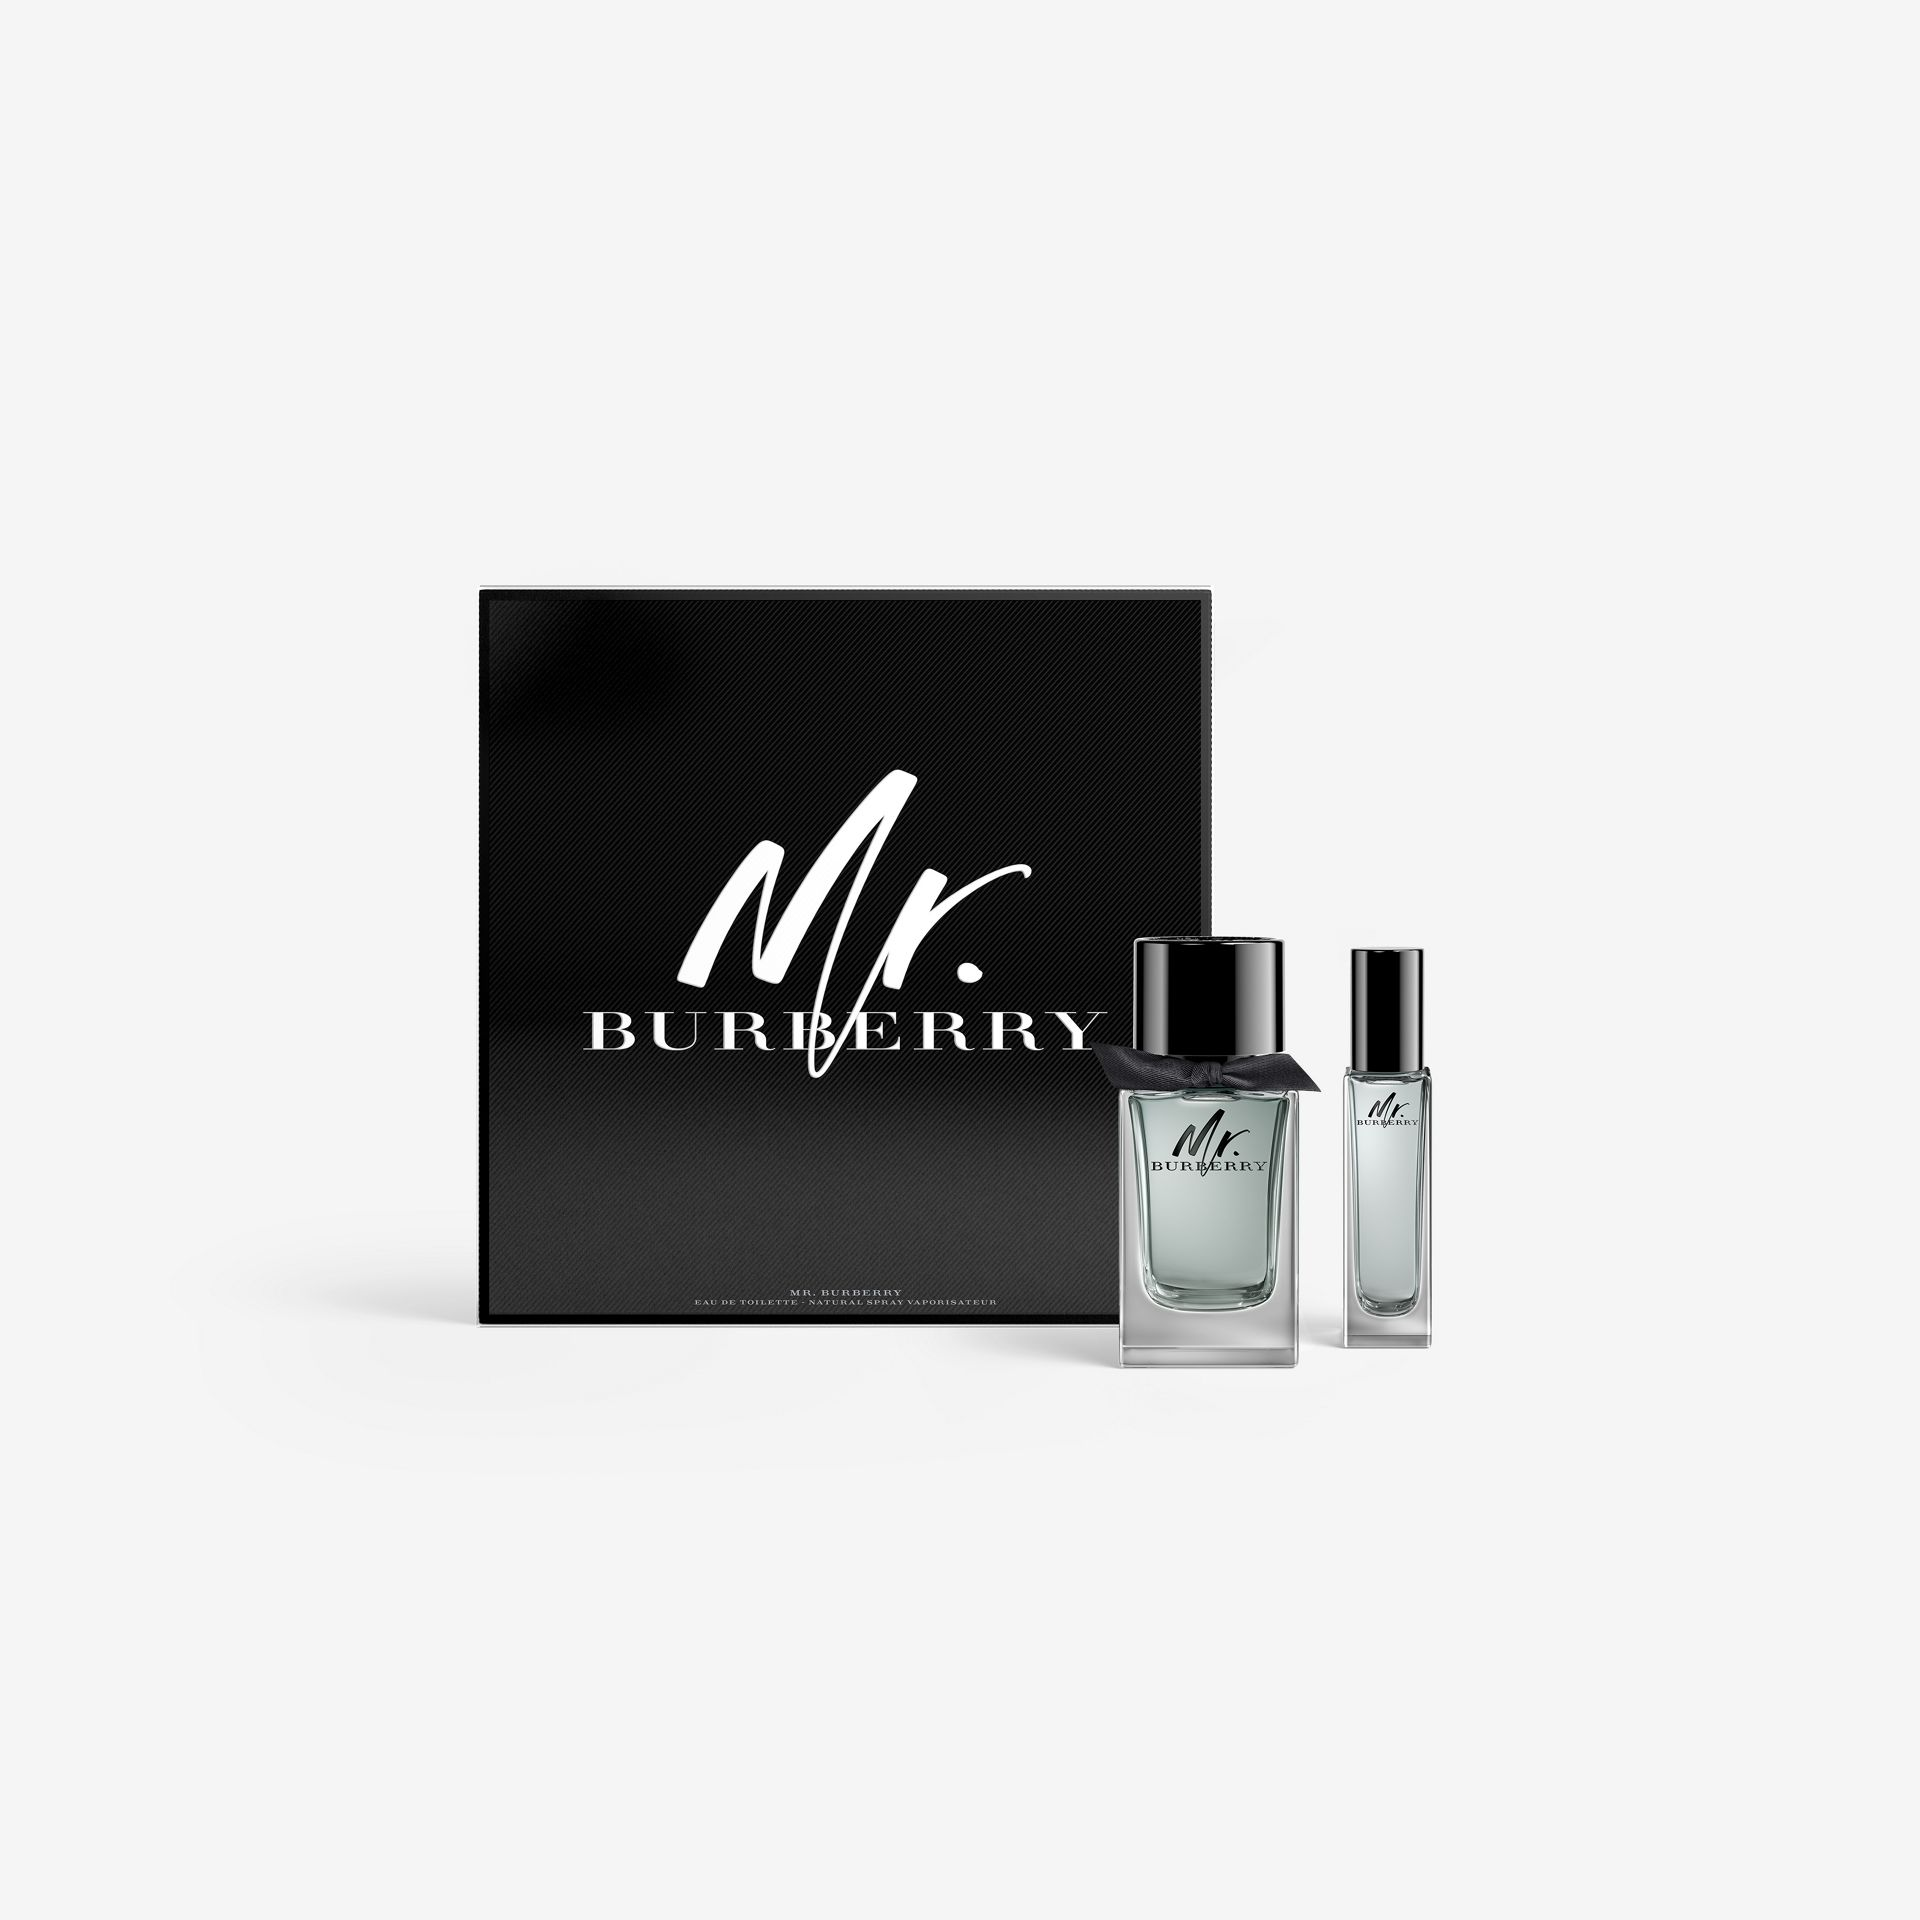 Mr. Burberry Eau de Toilette Gift Set - gallery image 1